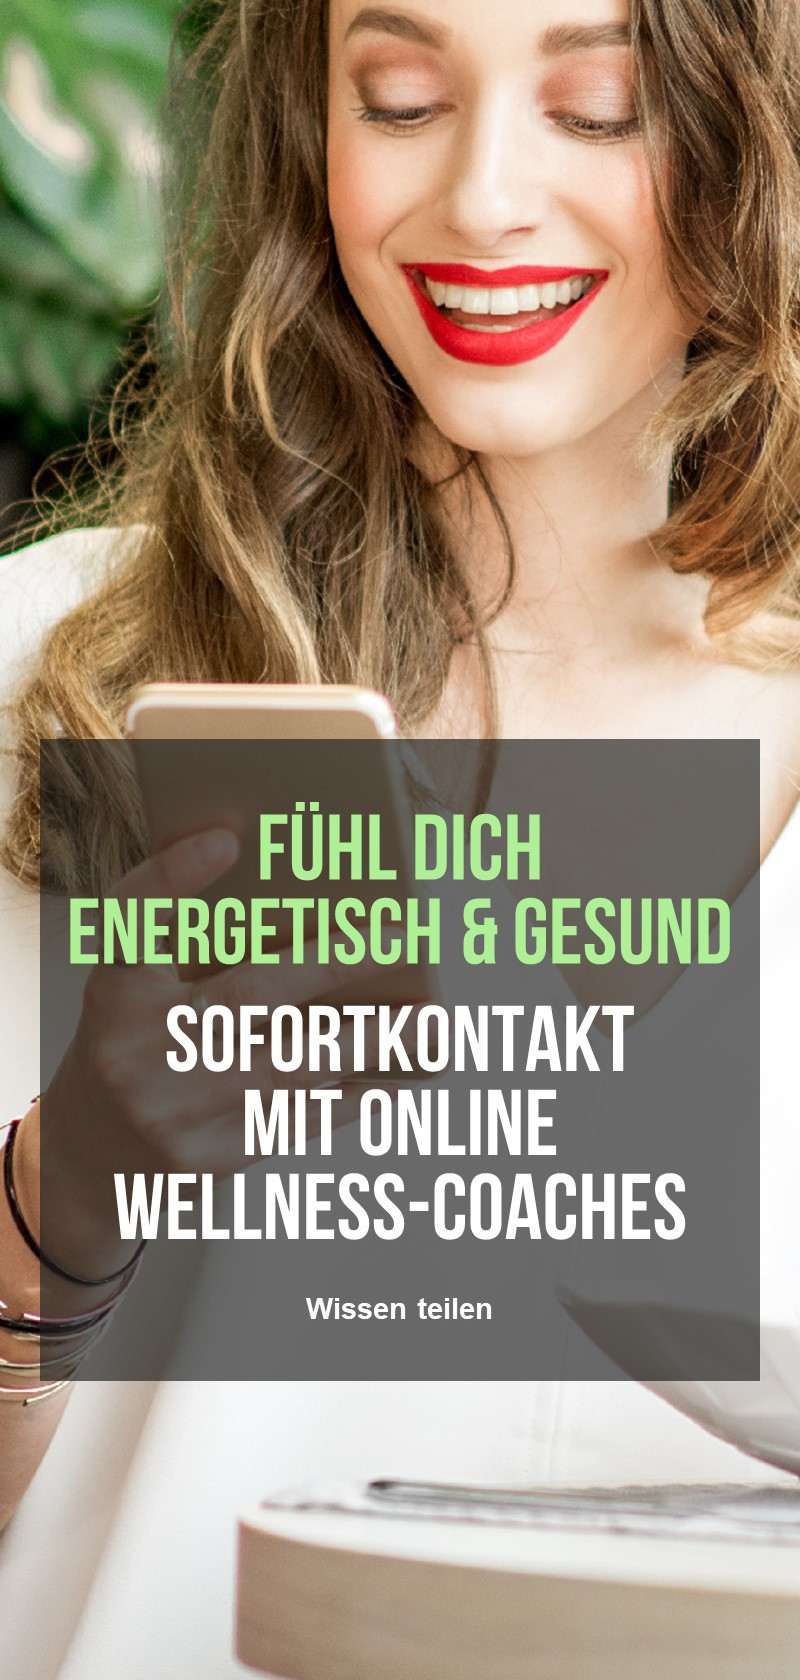 Wellness-Coaches